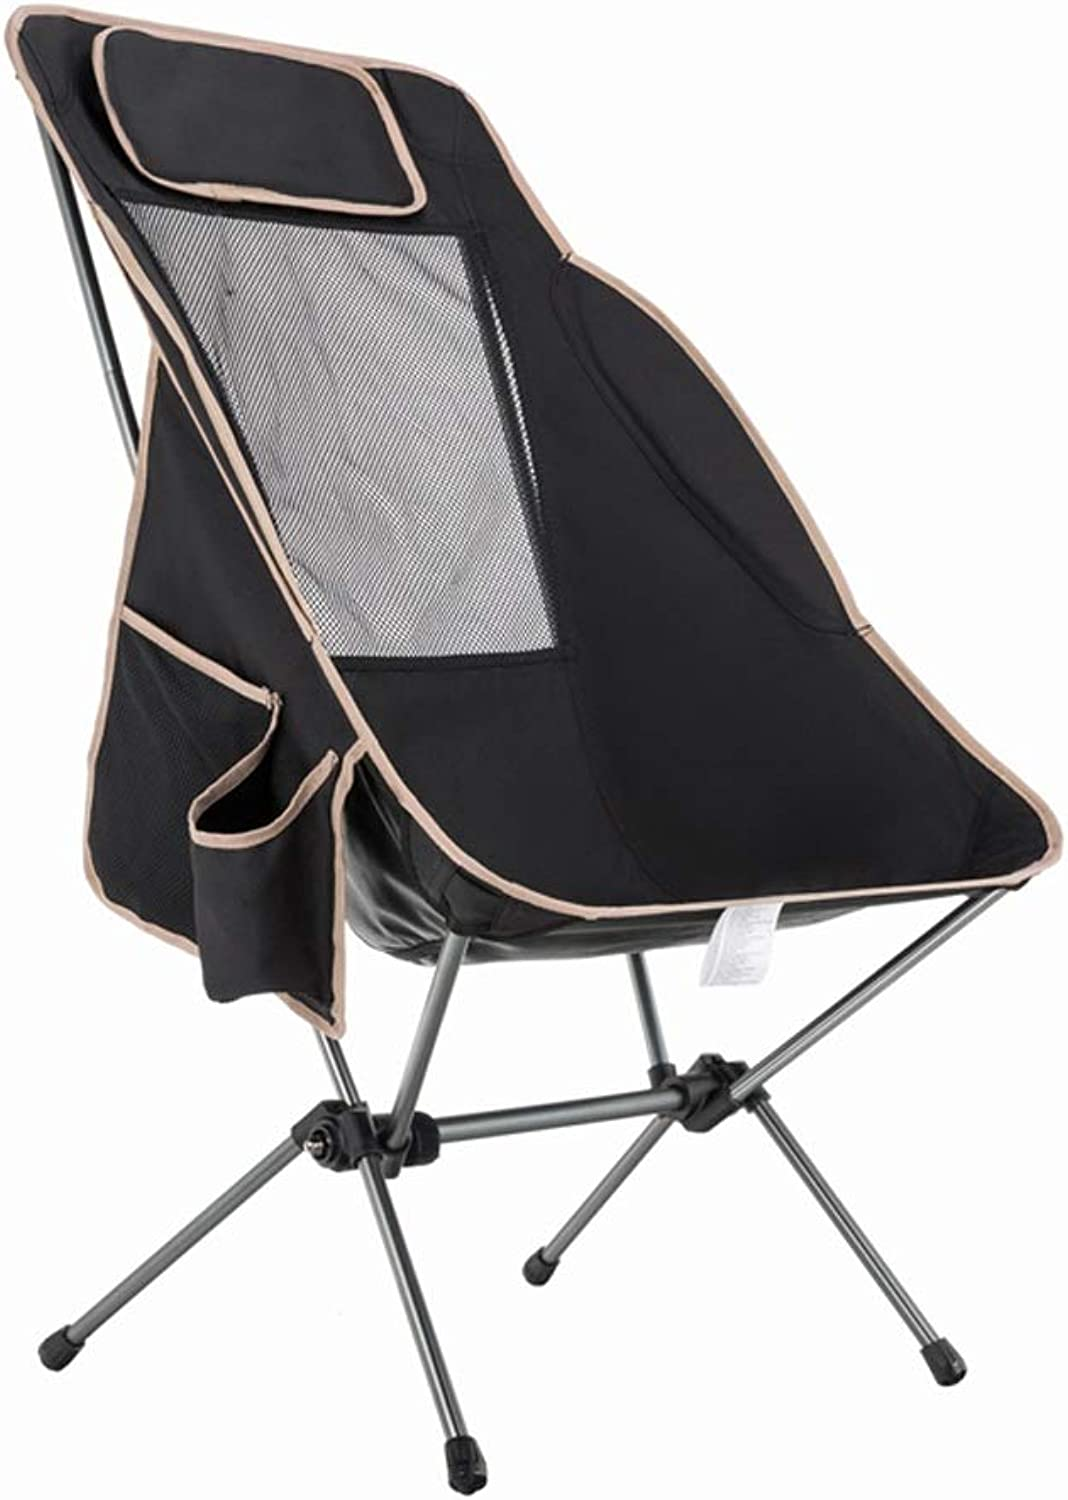 Nevy Portable Camping Chairs with Cup Holder Compact Ultralight Folding Backpacking Fishing Chair,Black